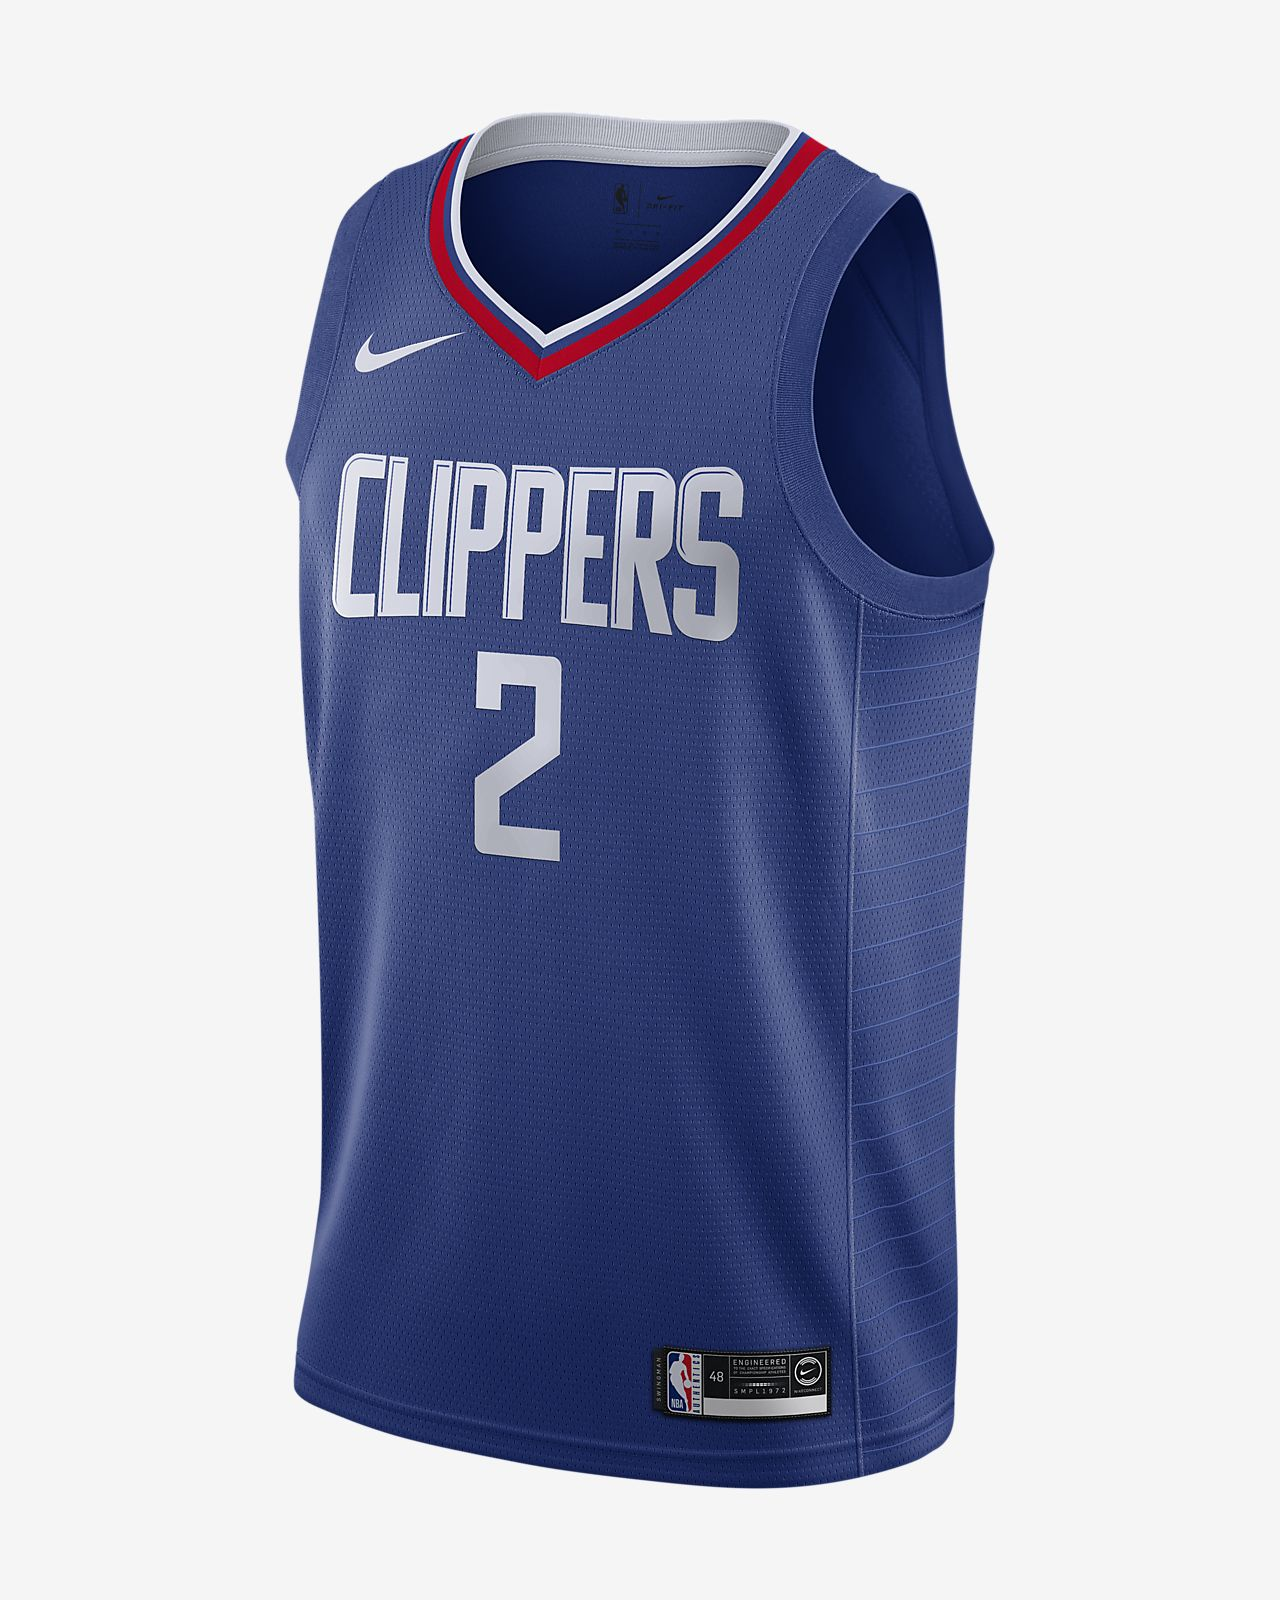 Camiseta Nike NBA Swingman Kawhi Leonard Clippers Icon Edition